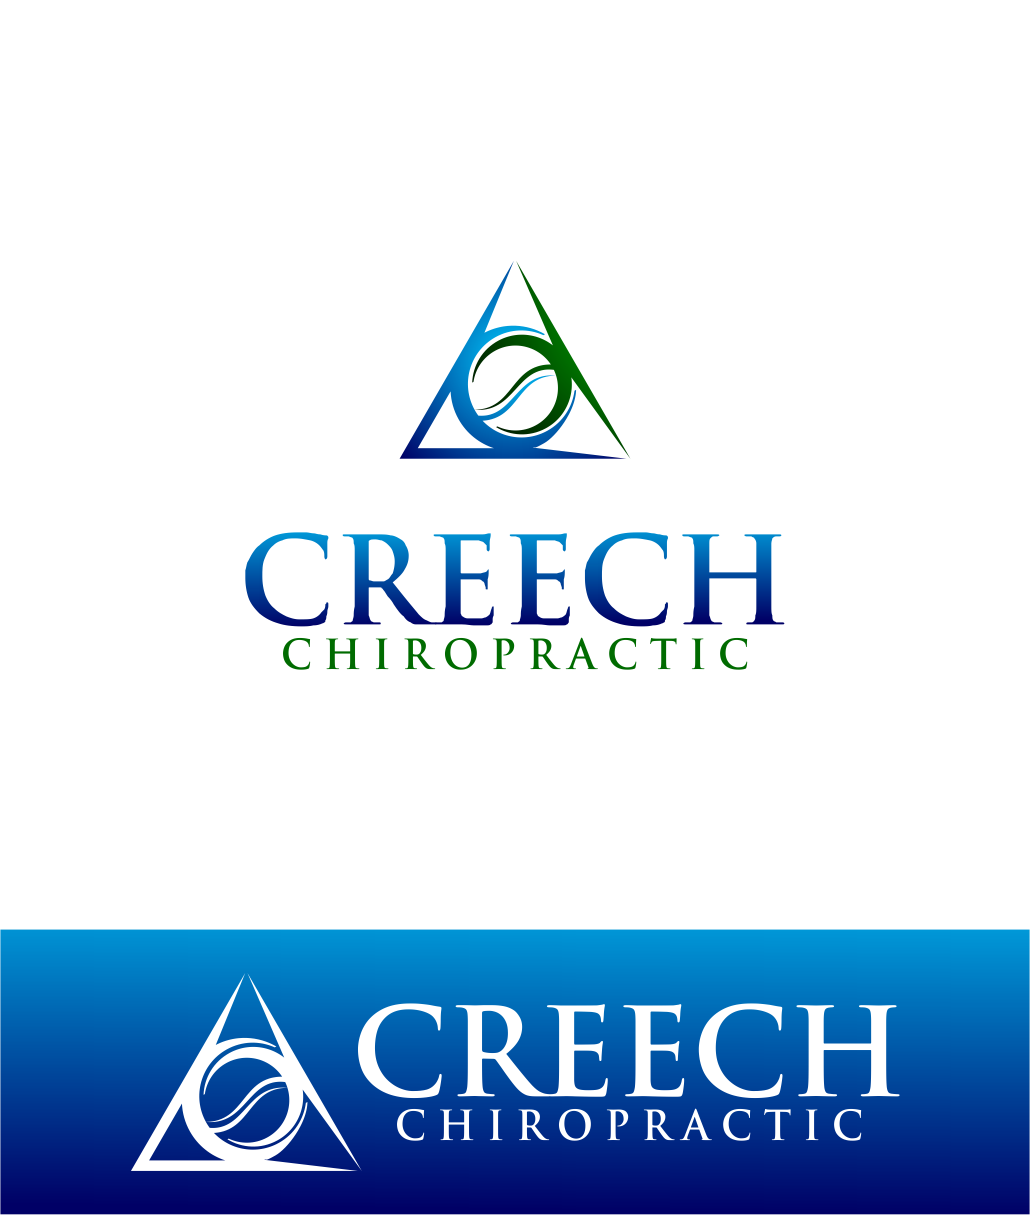 Logo Design by Agus Martoyo - Entry No. 121 in the Logo Design Contest Imaginative Logo Design for Creech Chiropractic.